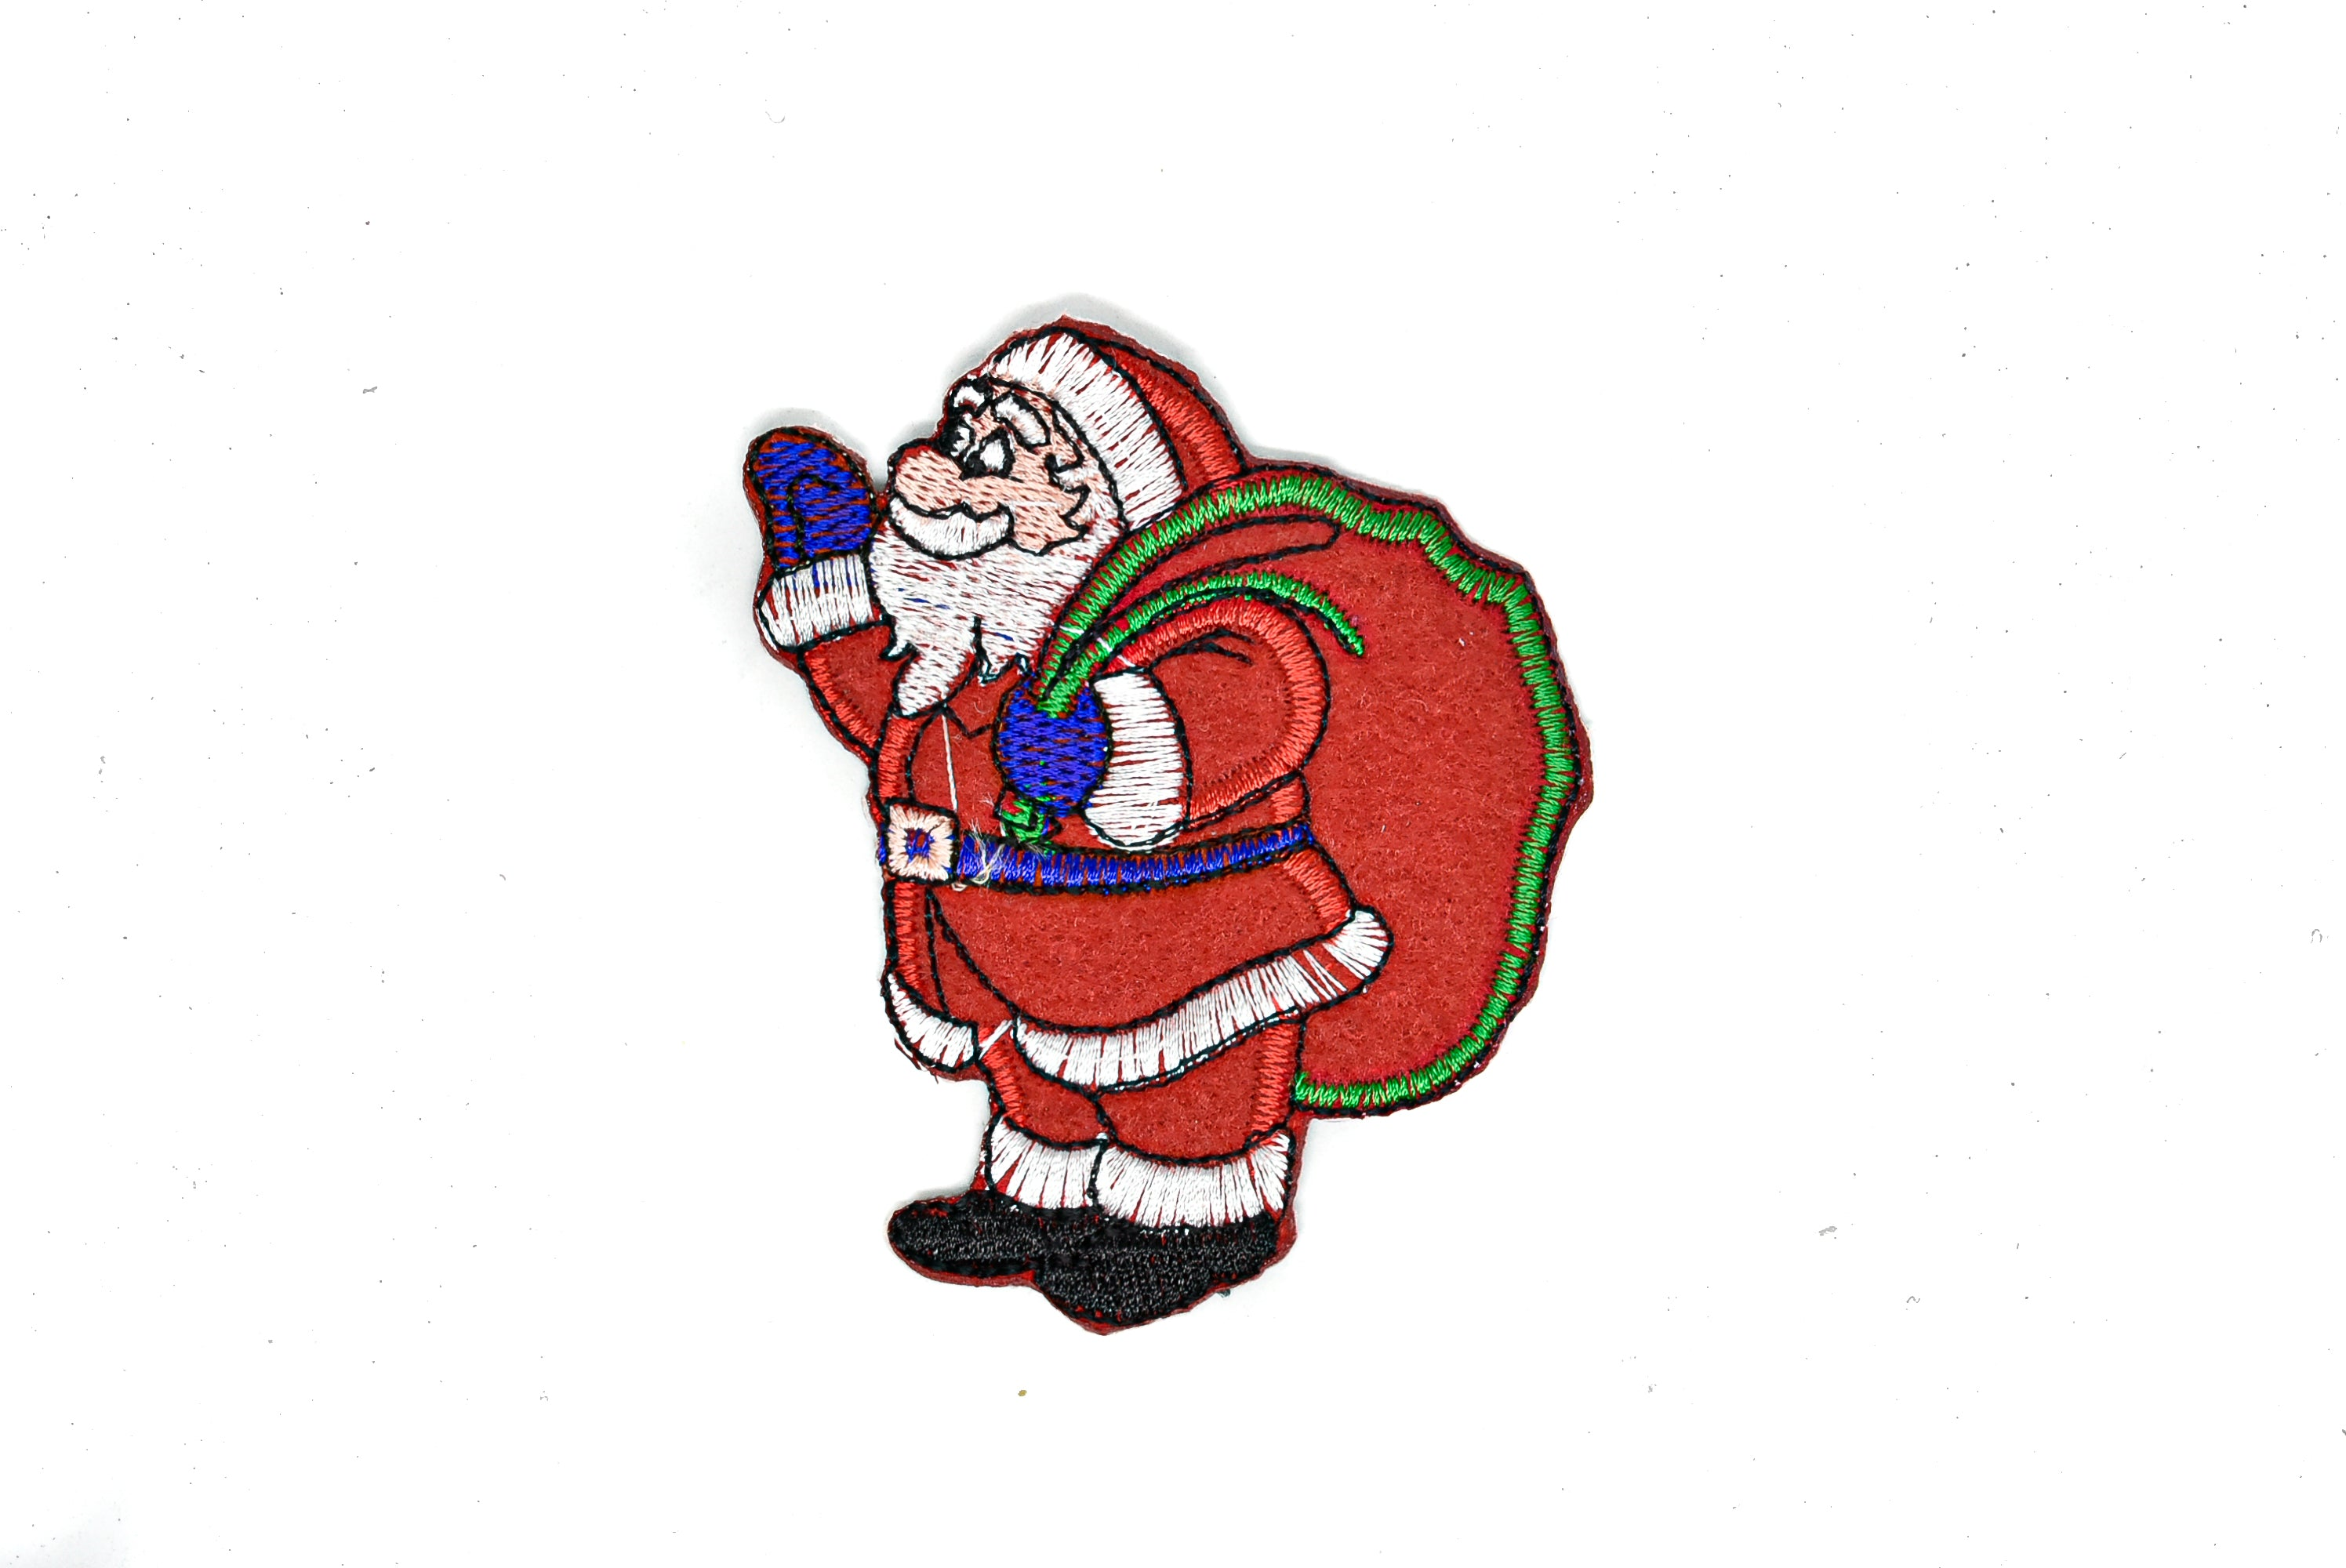 "Santa Claus Waving Iron-On Patch 2.5"" x 3.5"" - 1 Piece"